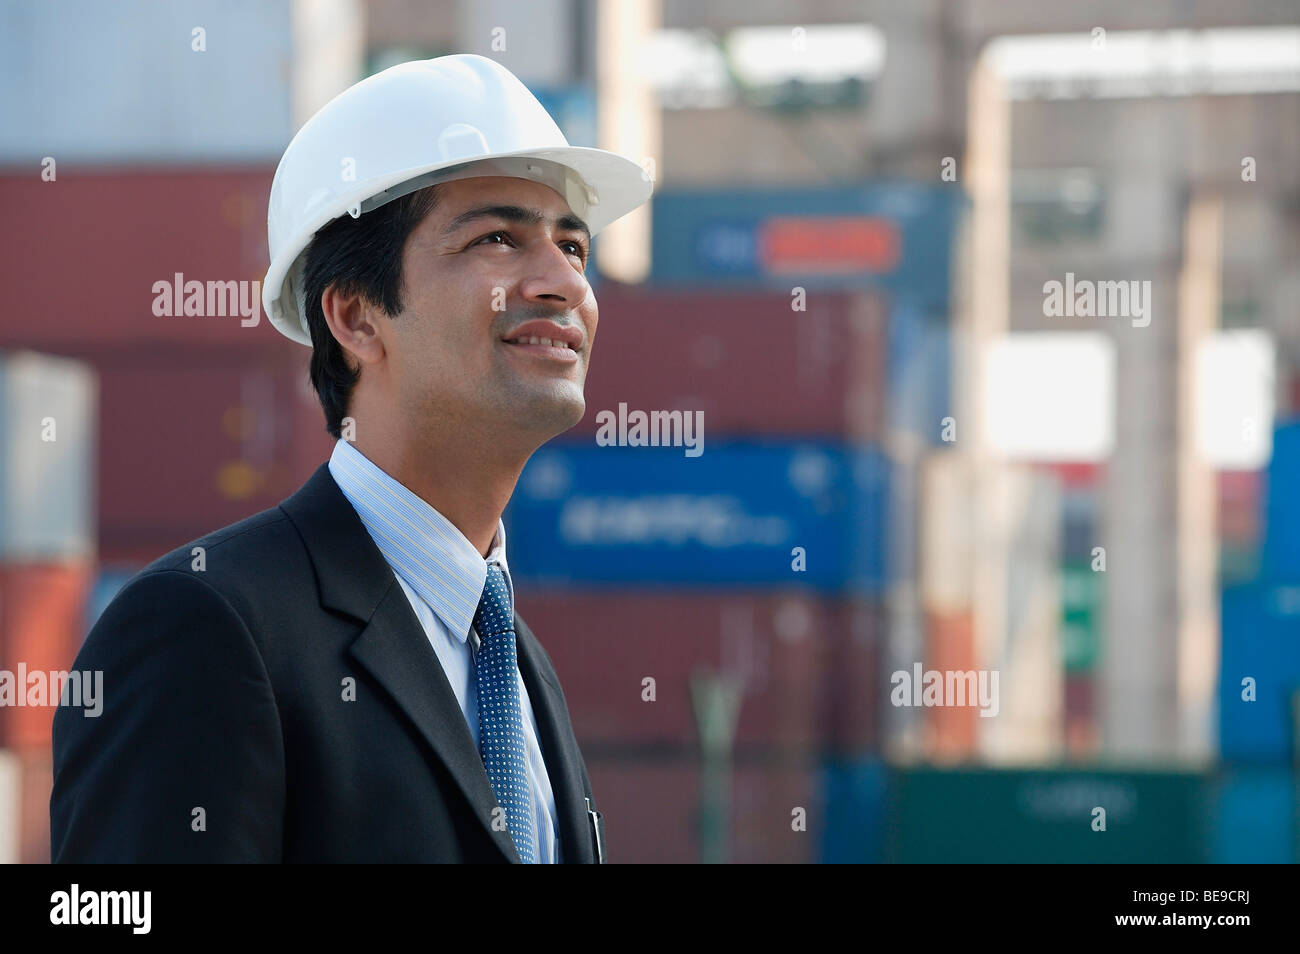 Man with helmet looking up - Stock Image